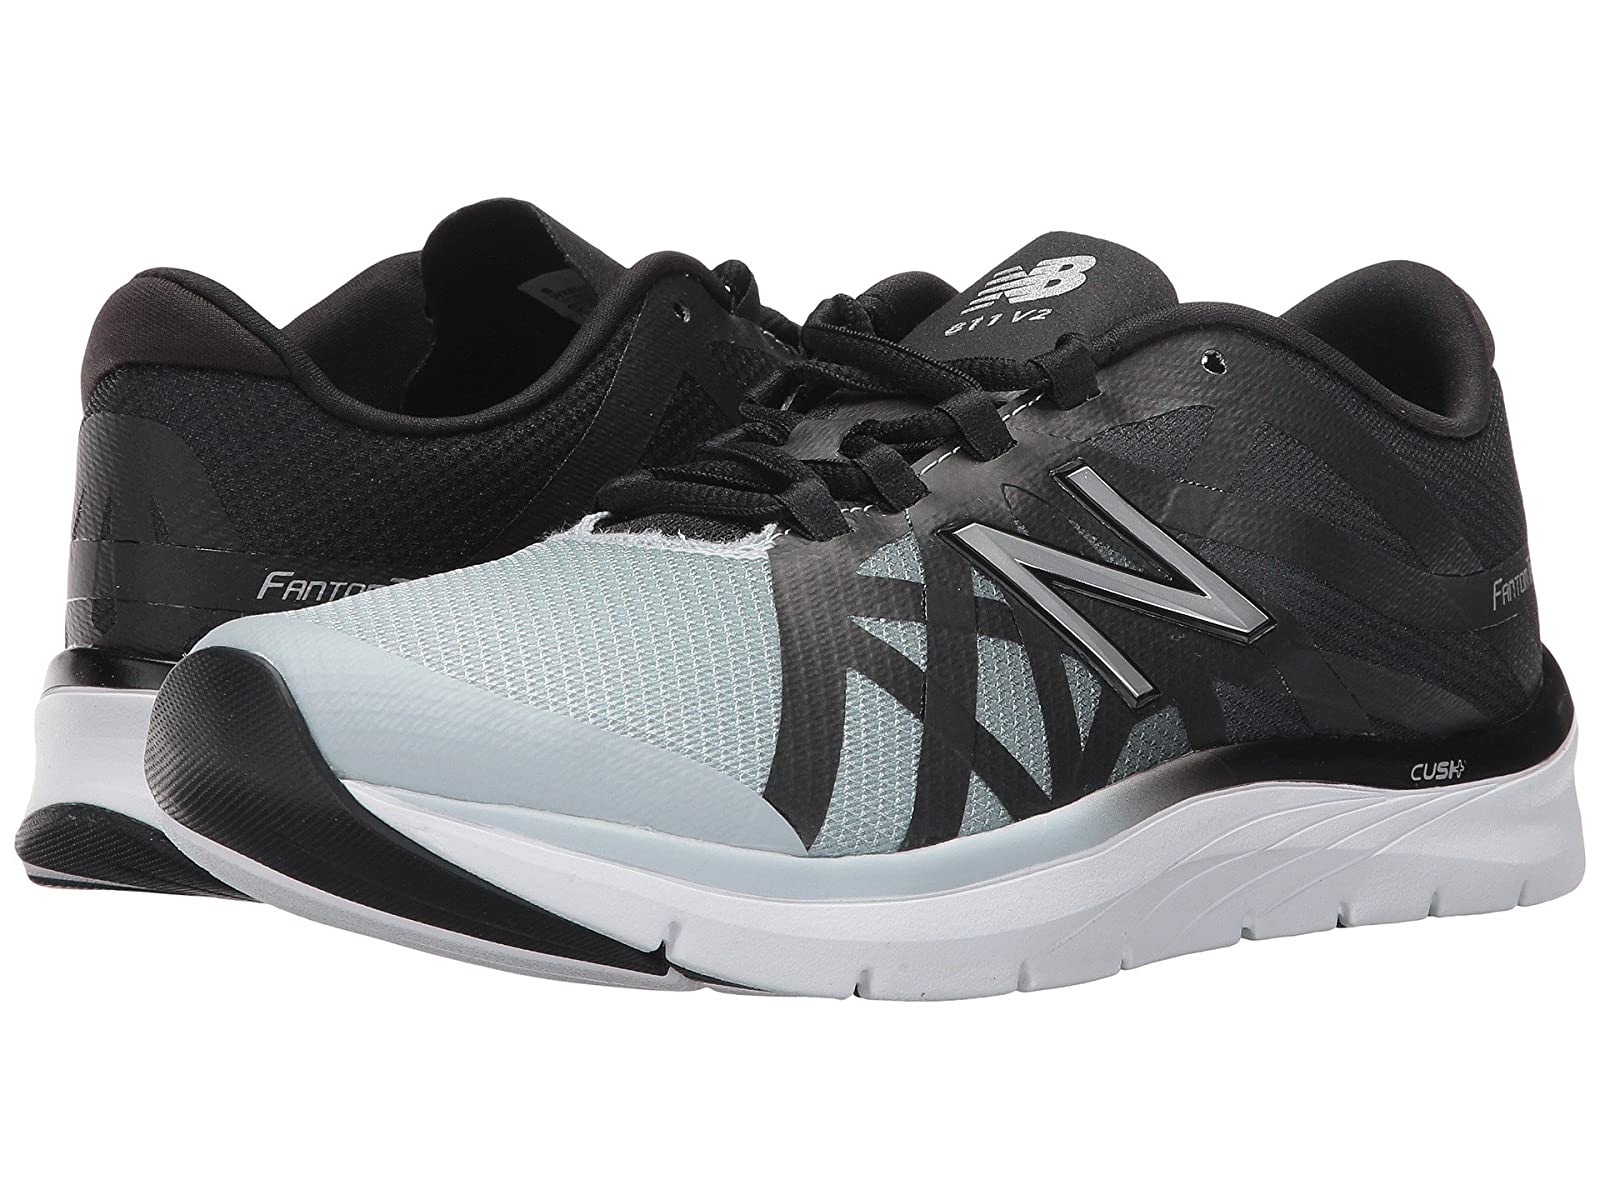 New Balance 811v2Cheap and distinctive eye-catching shoes